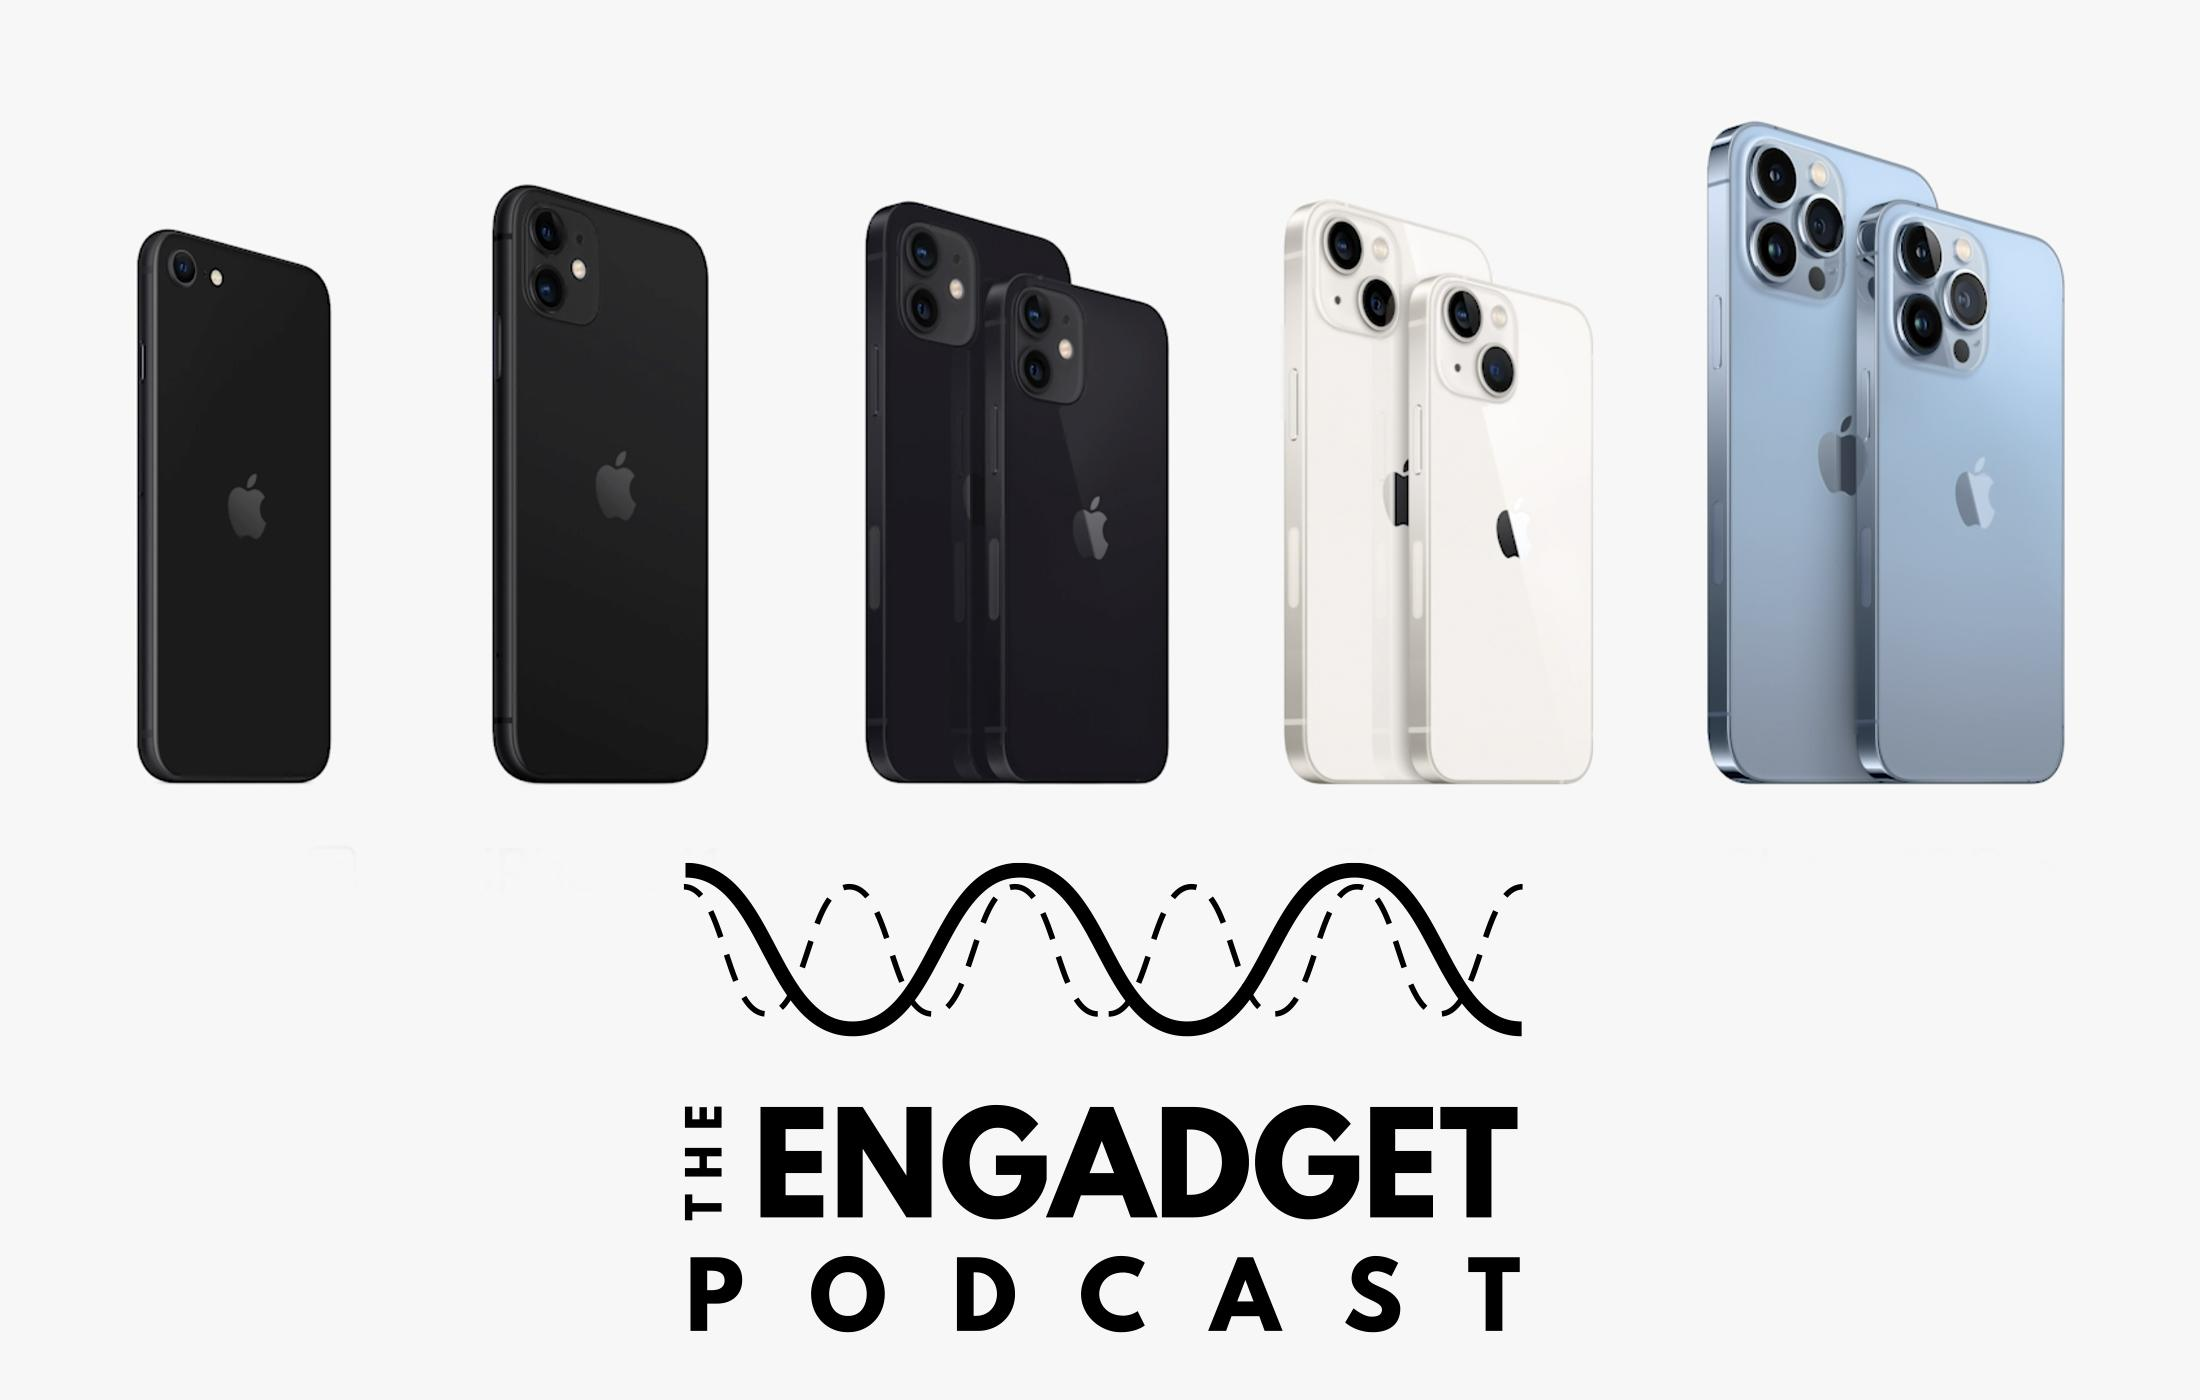 Engadget Podcast iPhone 13 series